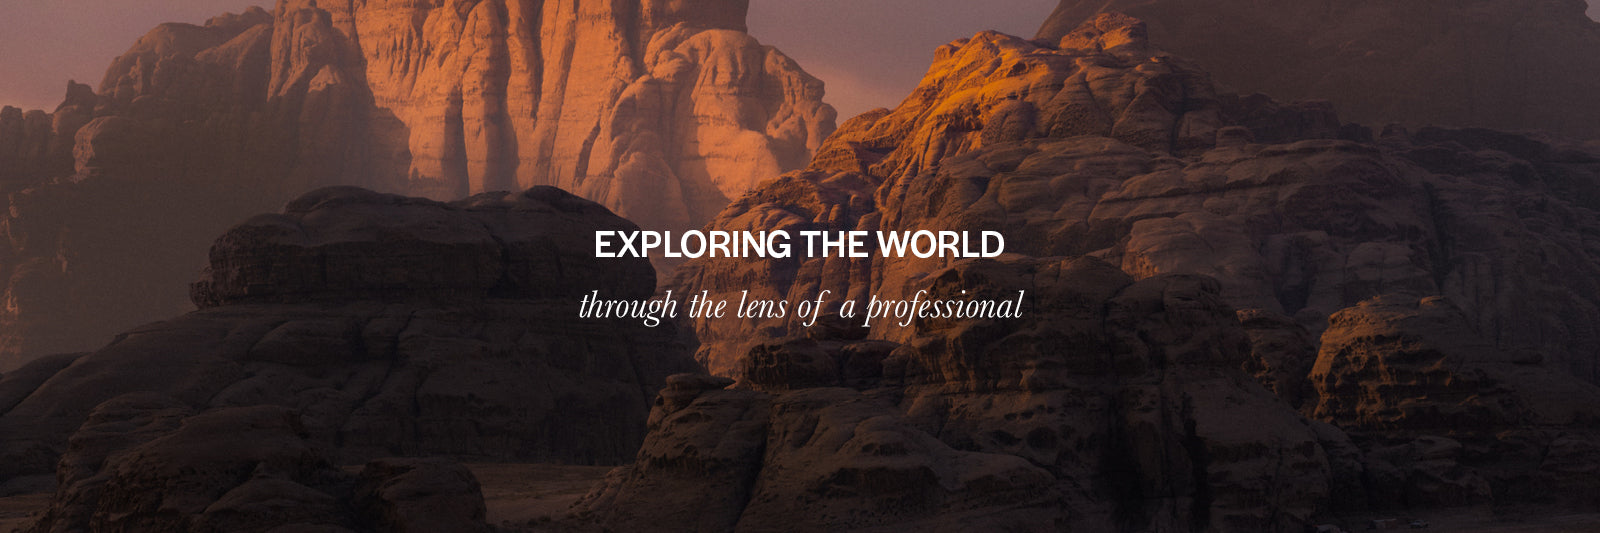 Exploring the World Through the Lens of a Professional